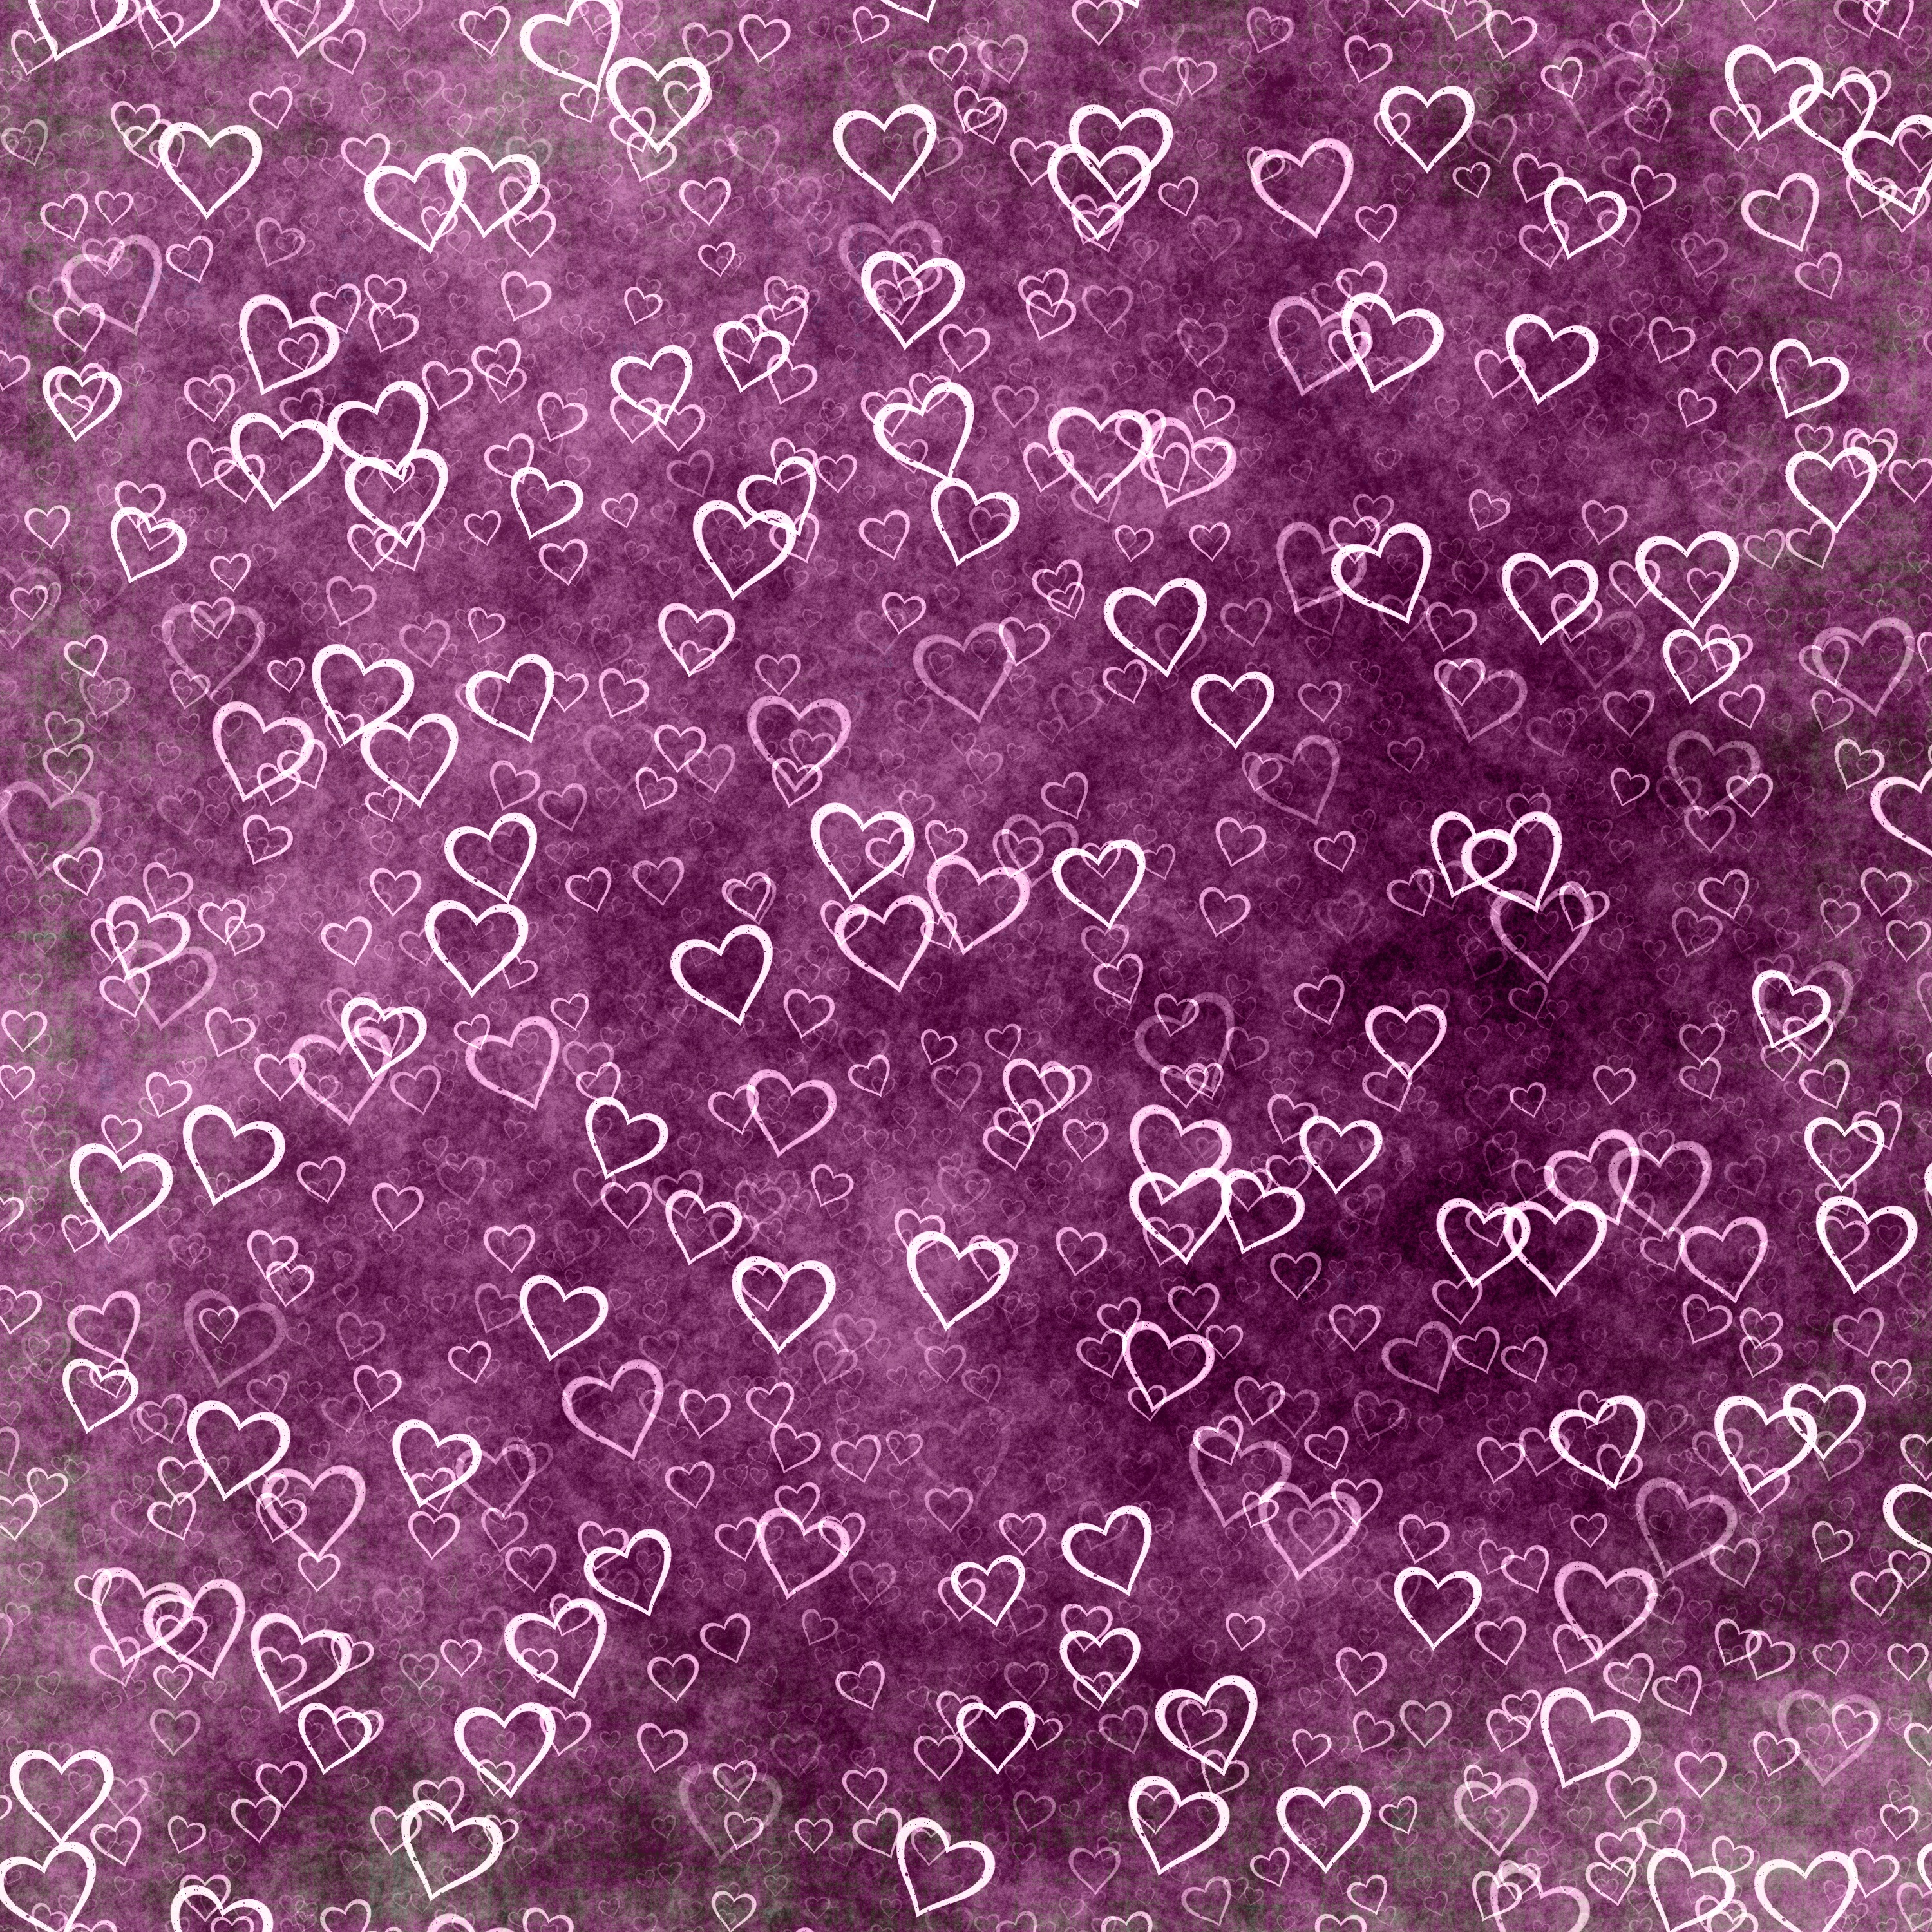 72357 download wallpaper Heart, Love, Texture, Patterns, Hearts screensavers and pictures for free